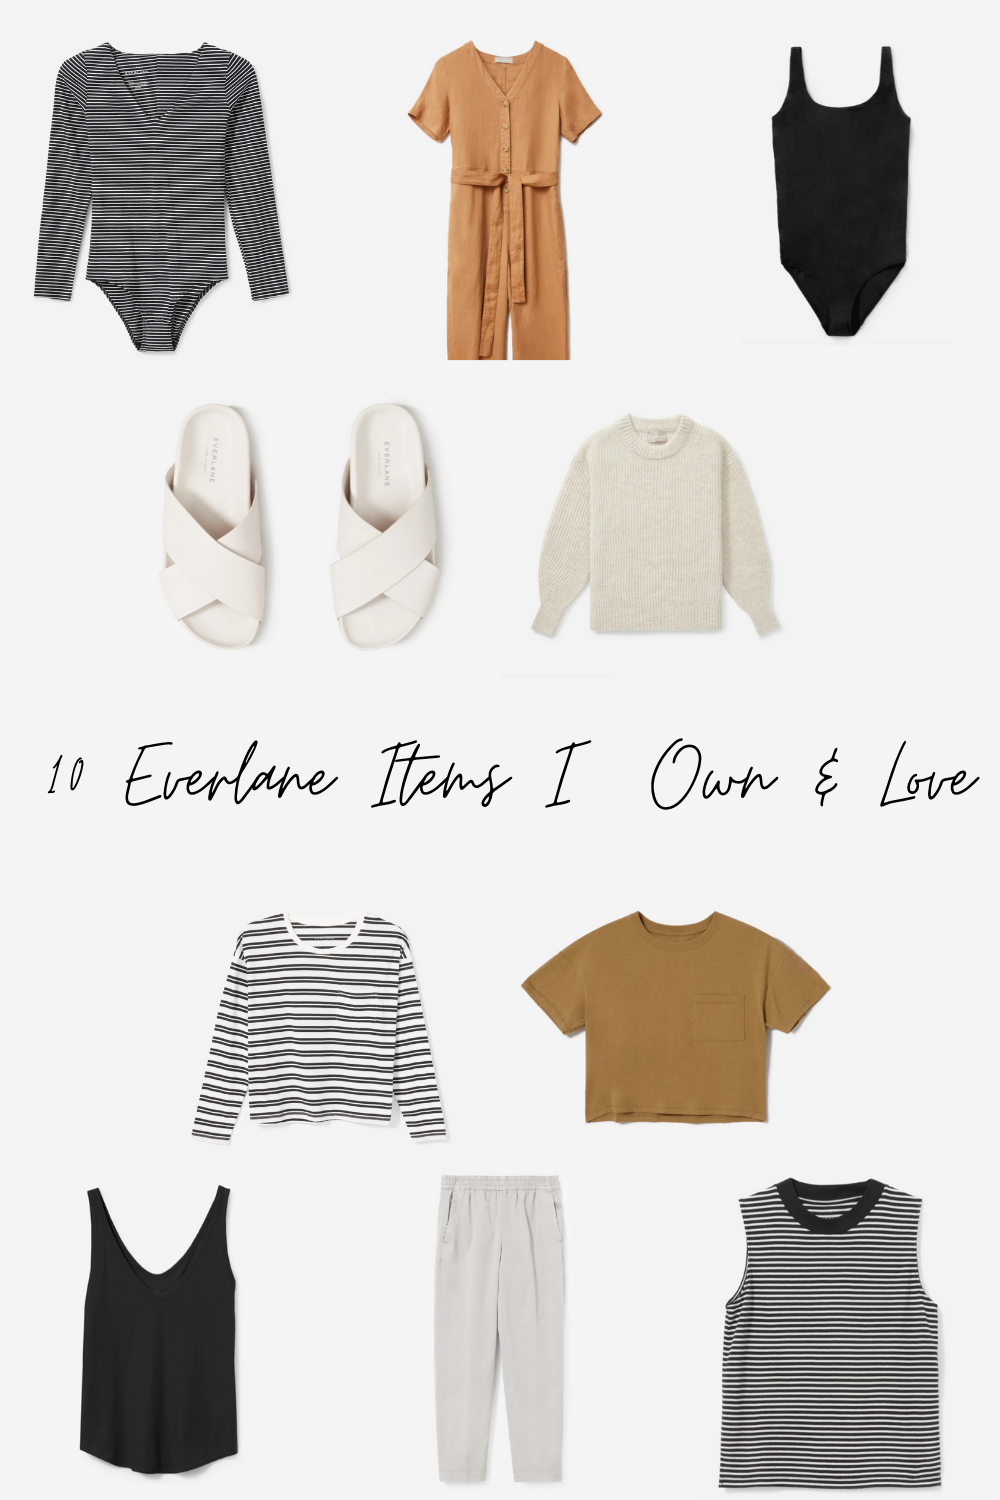 10 everlane items I own and love